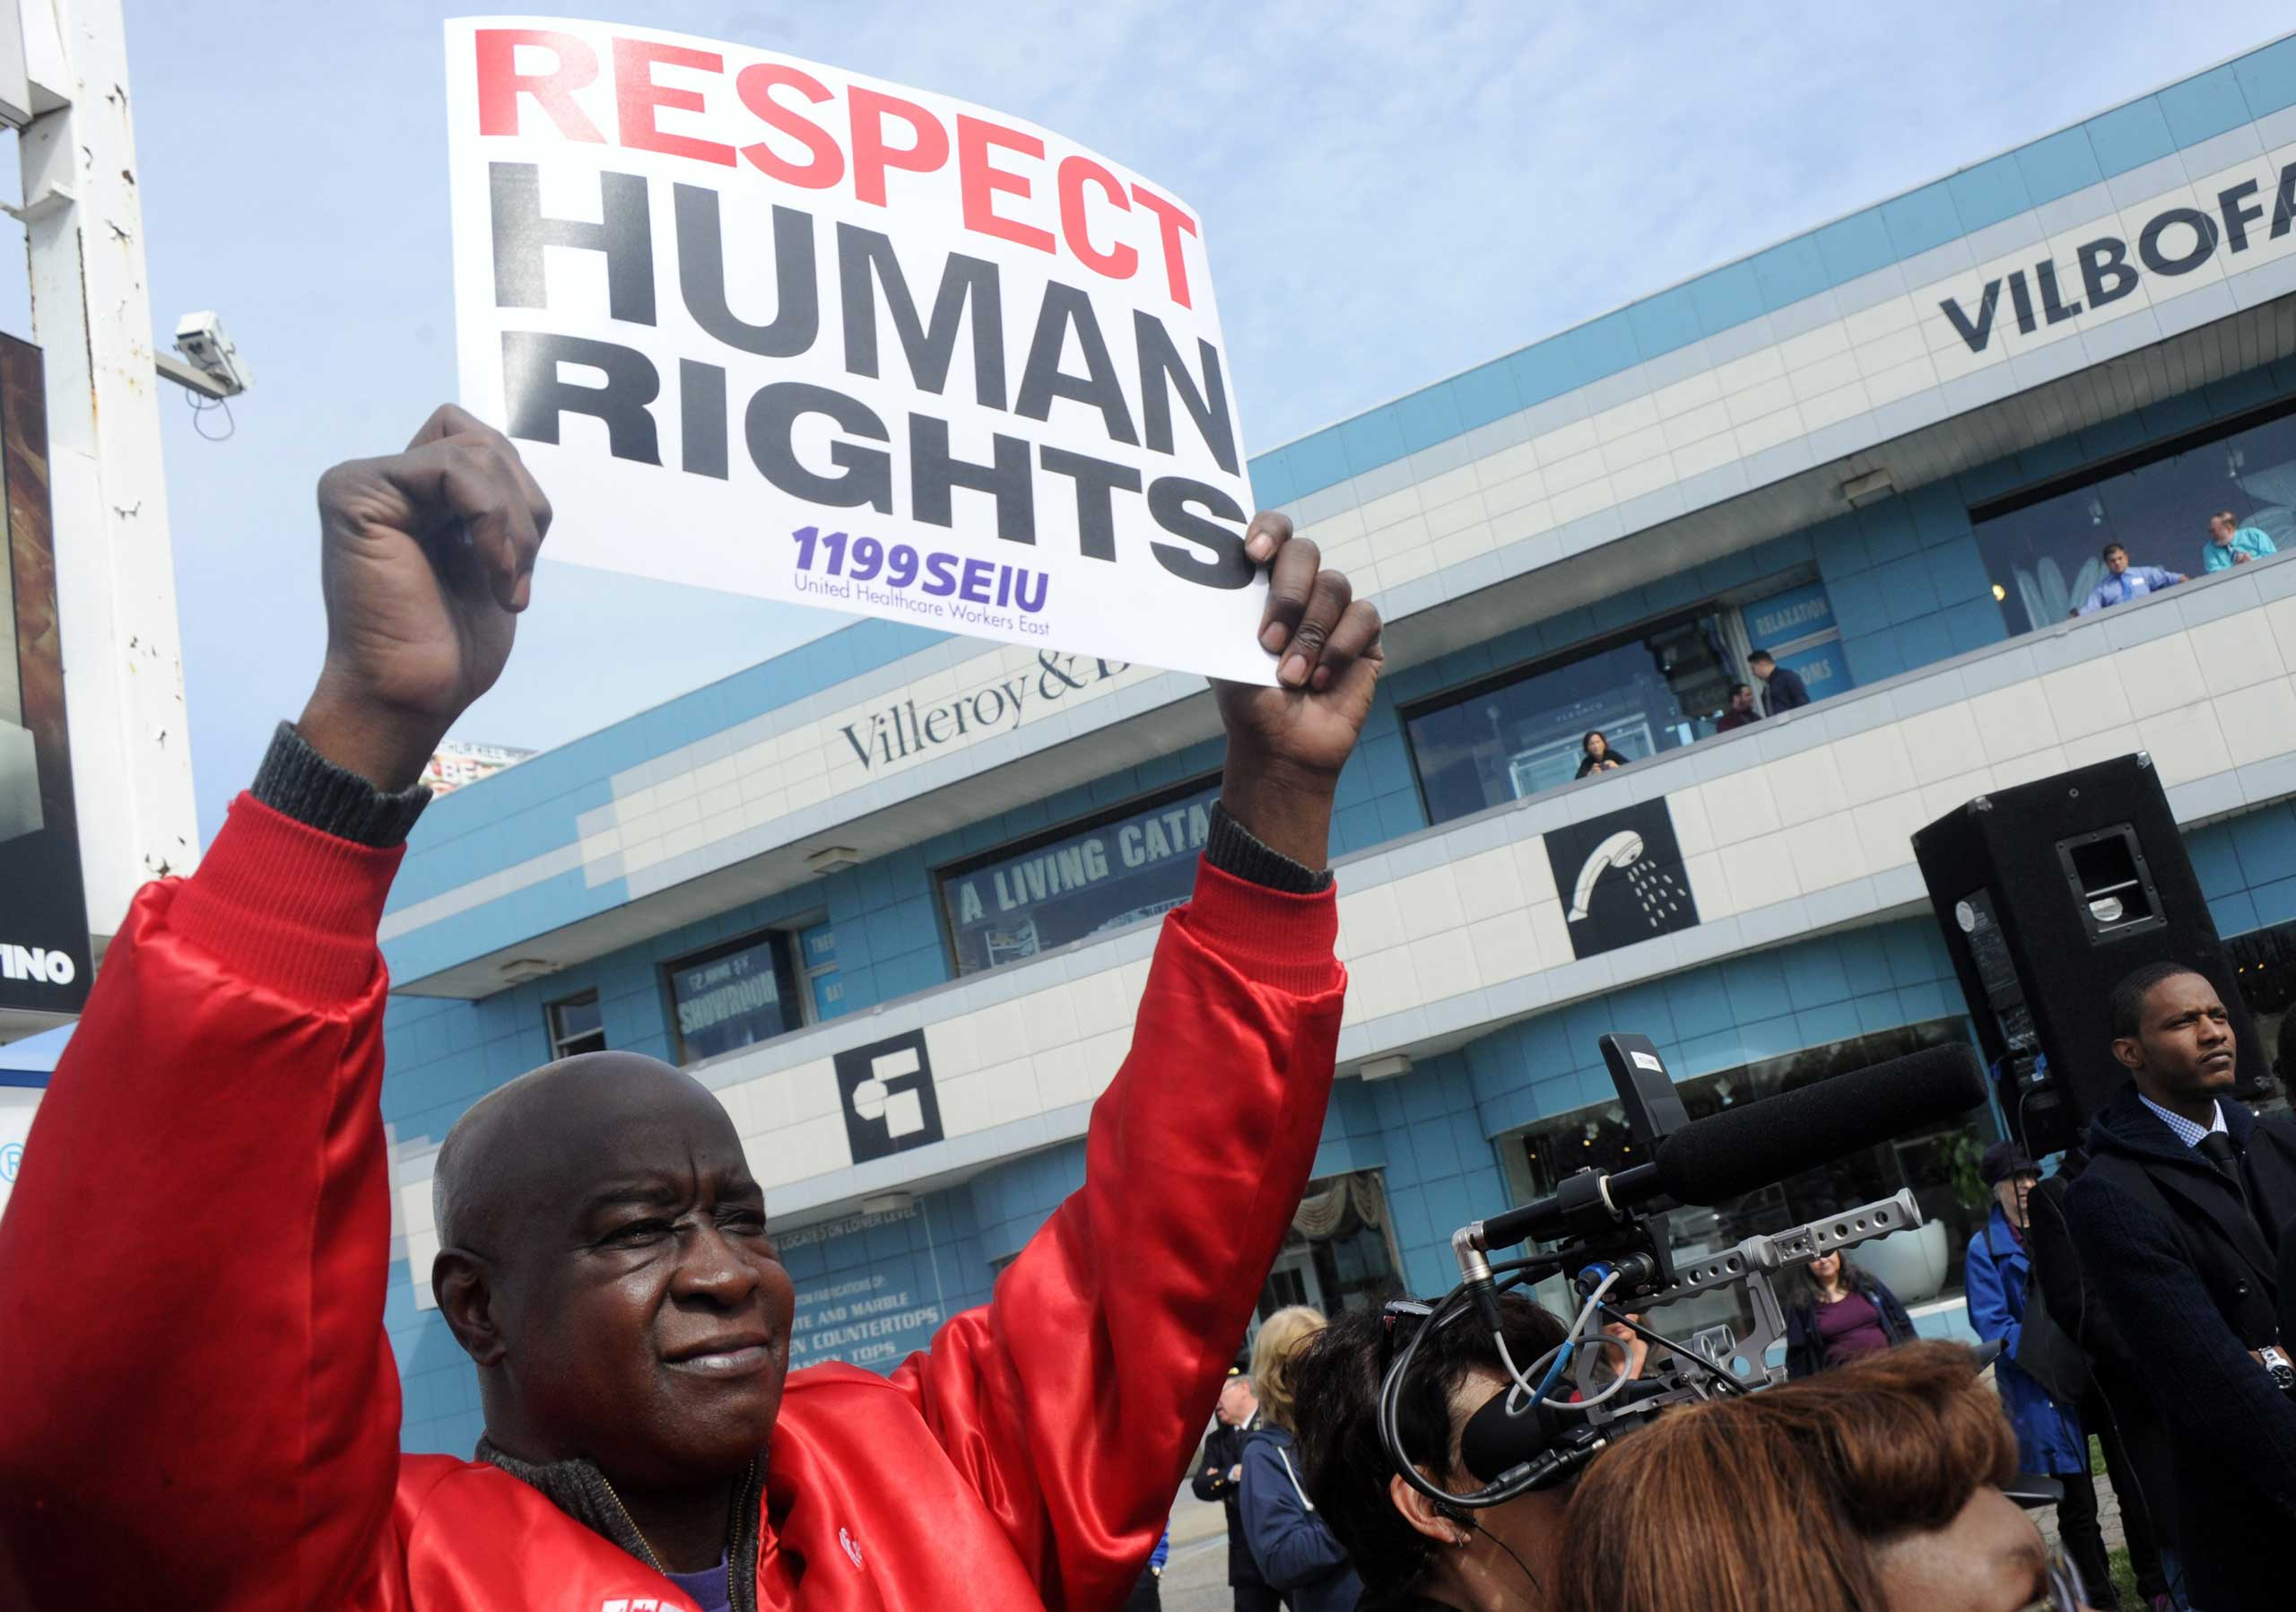 March2Justice demonstration calling for criminal justice reform, Staten Island, New York, April 13, 2015.